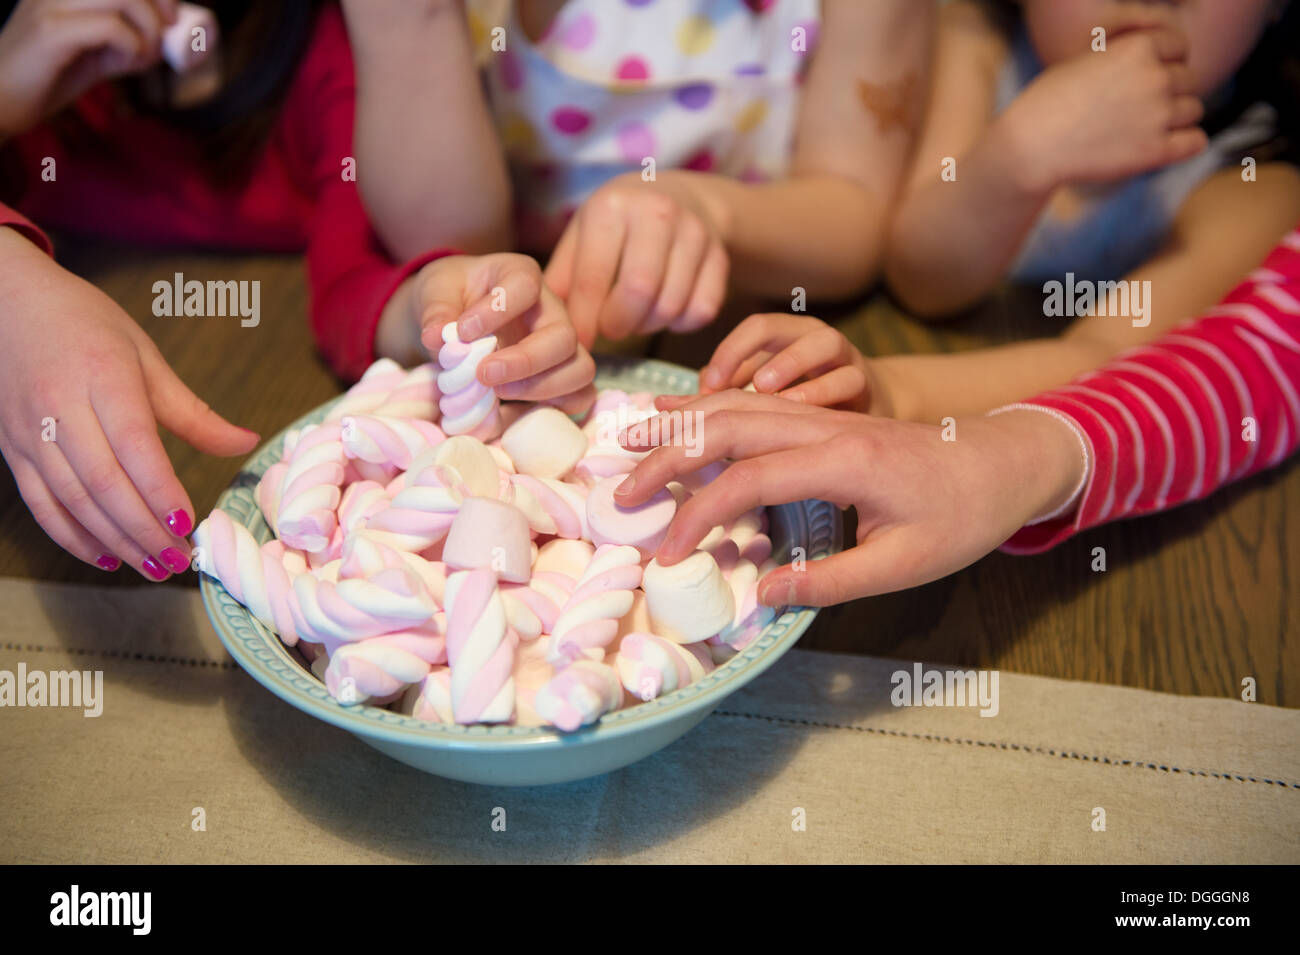 Girls reaching for sweets, close up - Stock Image